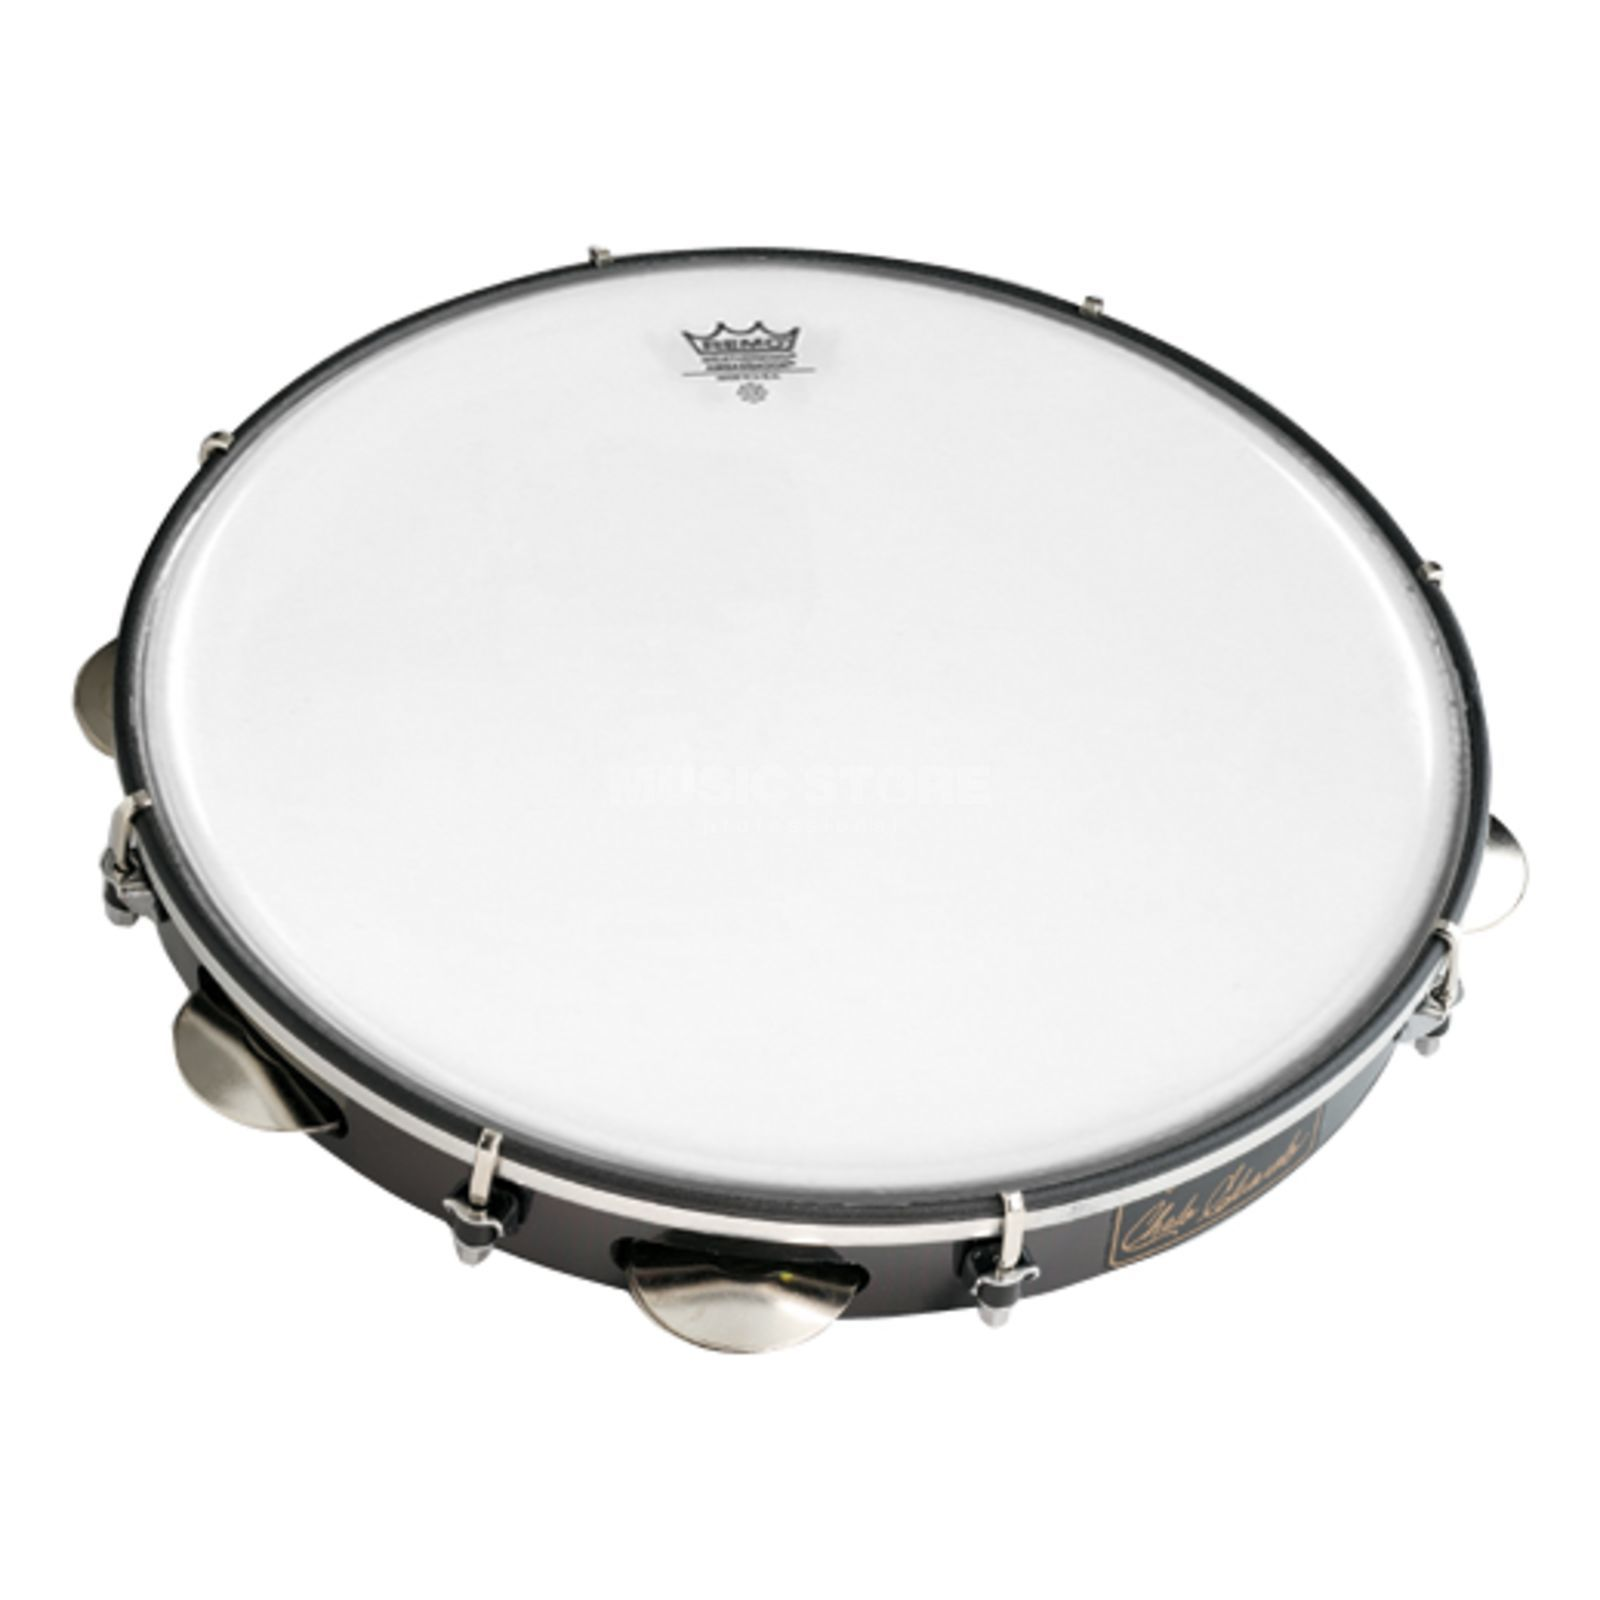 "Remo PD-8212-47 Pandeiro 12"" Brasilian Collection Product Image"